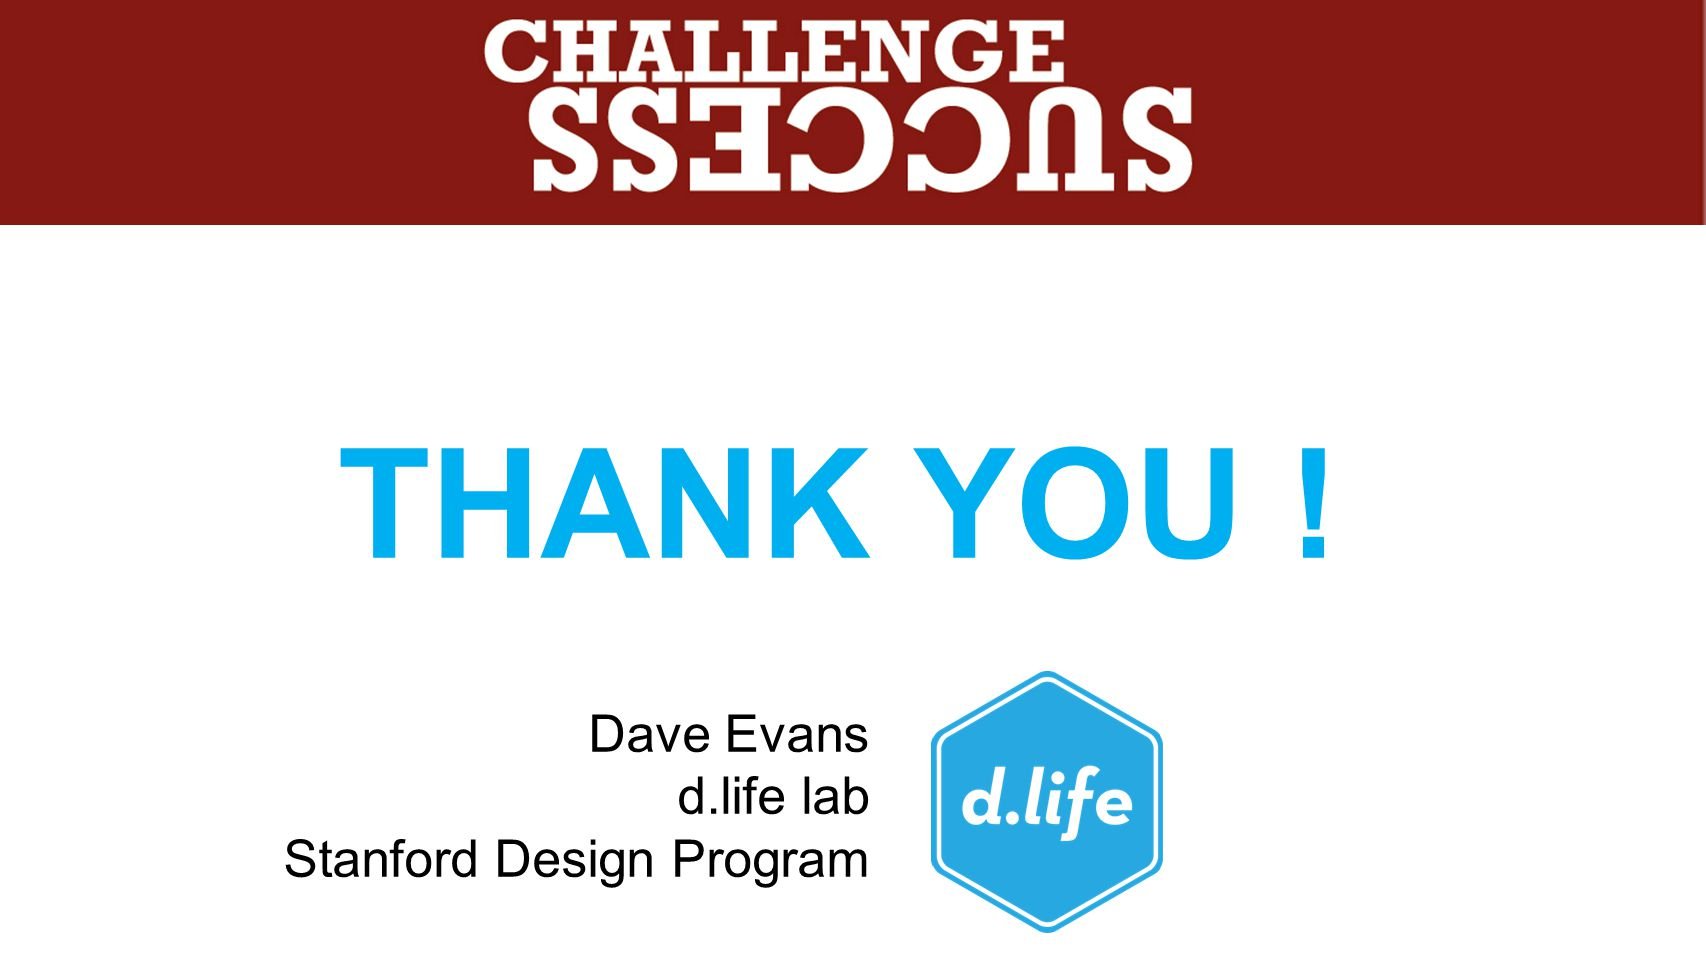 THANK YOU ! E Dave Evans d.life lab Stanford Design Program